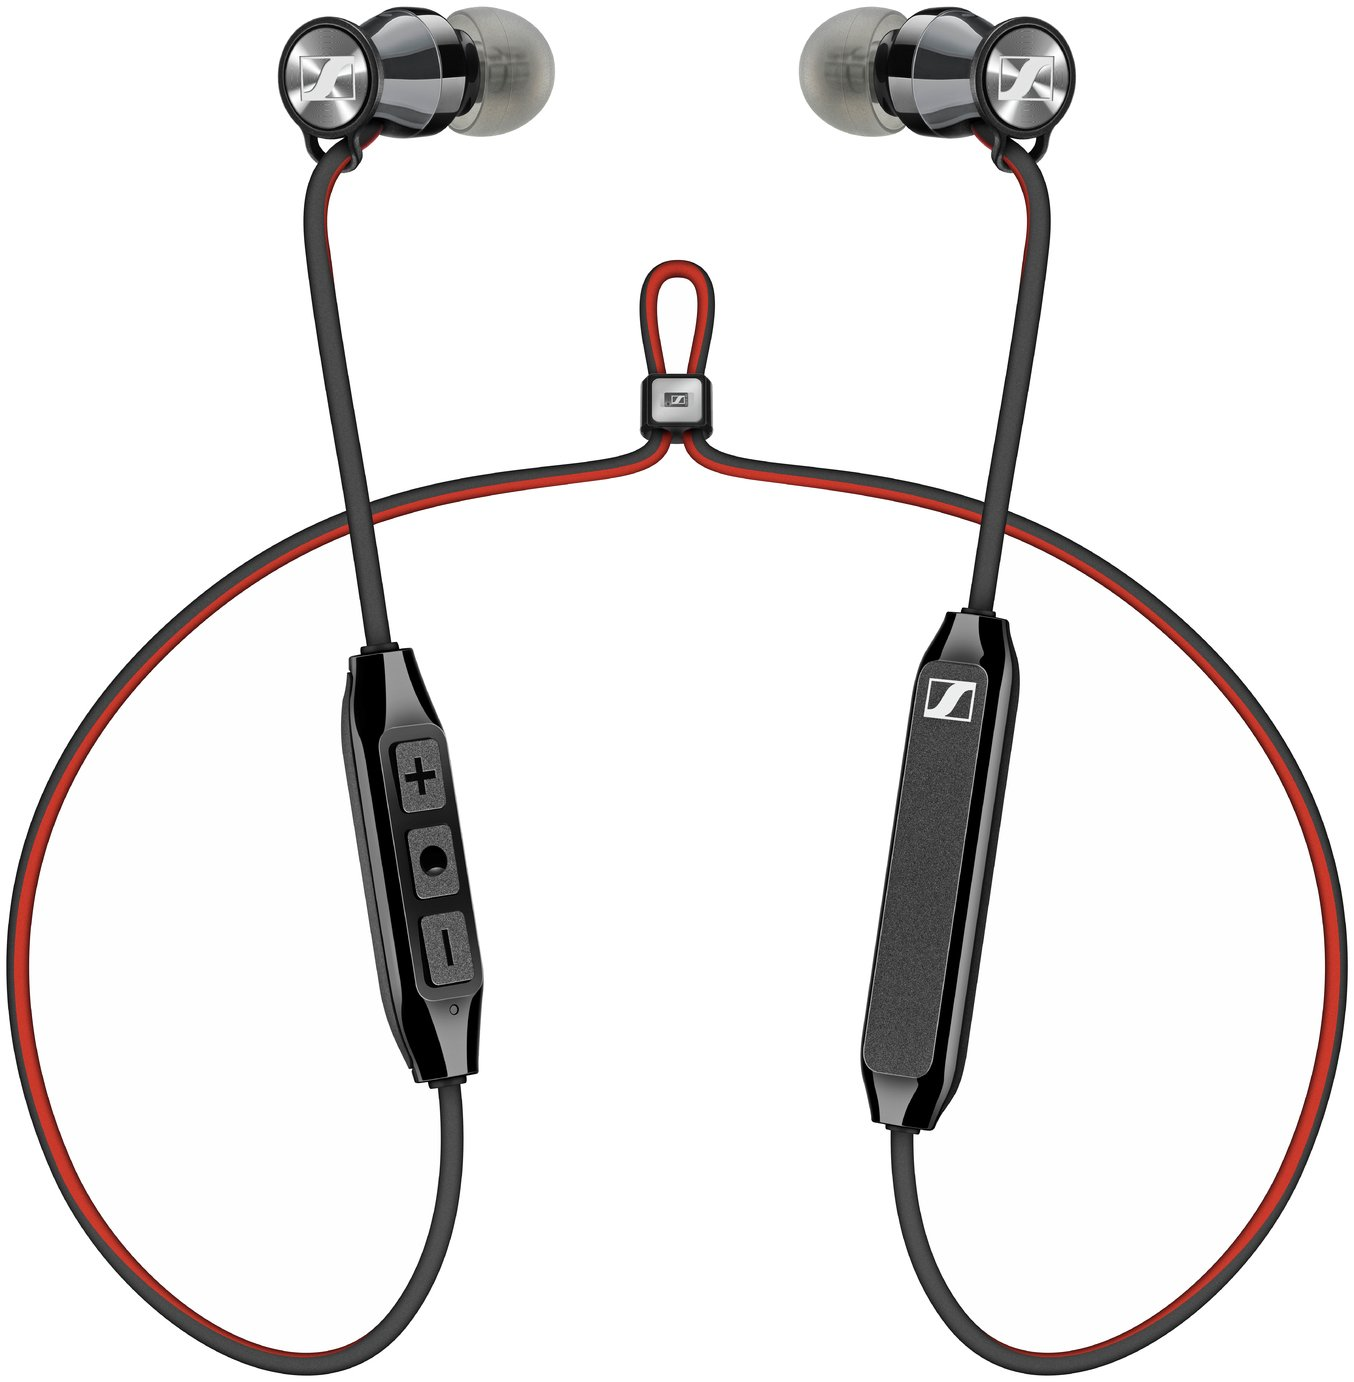 Electronics Photo Earphones Find Offers Online And Compare Mediatech Headset Ep 07 Sennheiser Momentum Free Wireless In Ear Headphones Black From